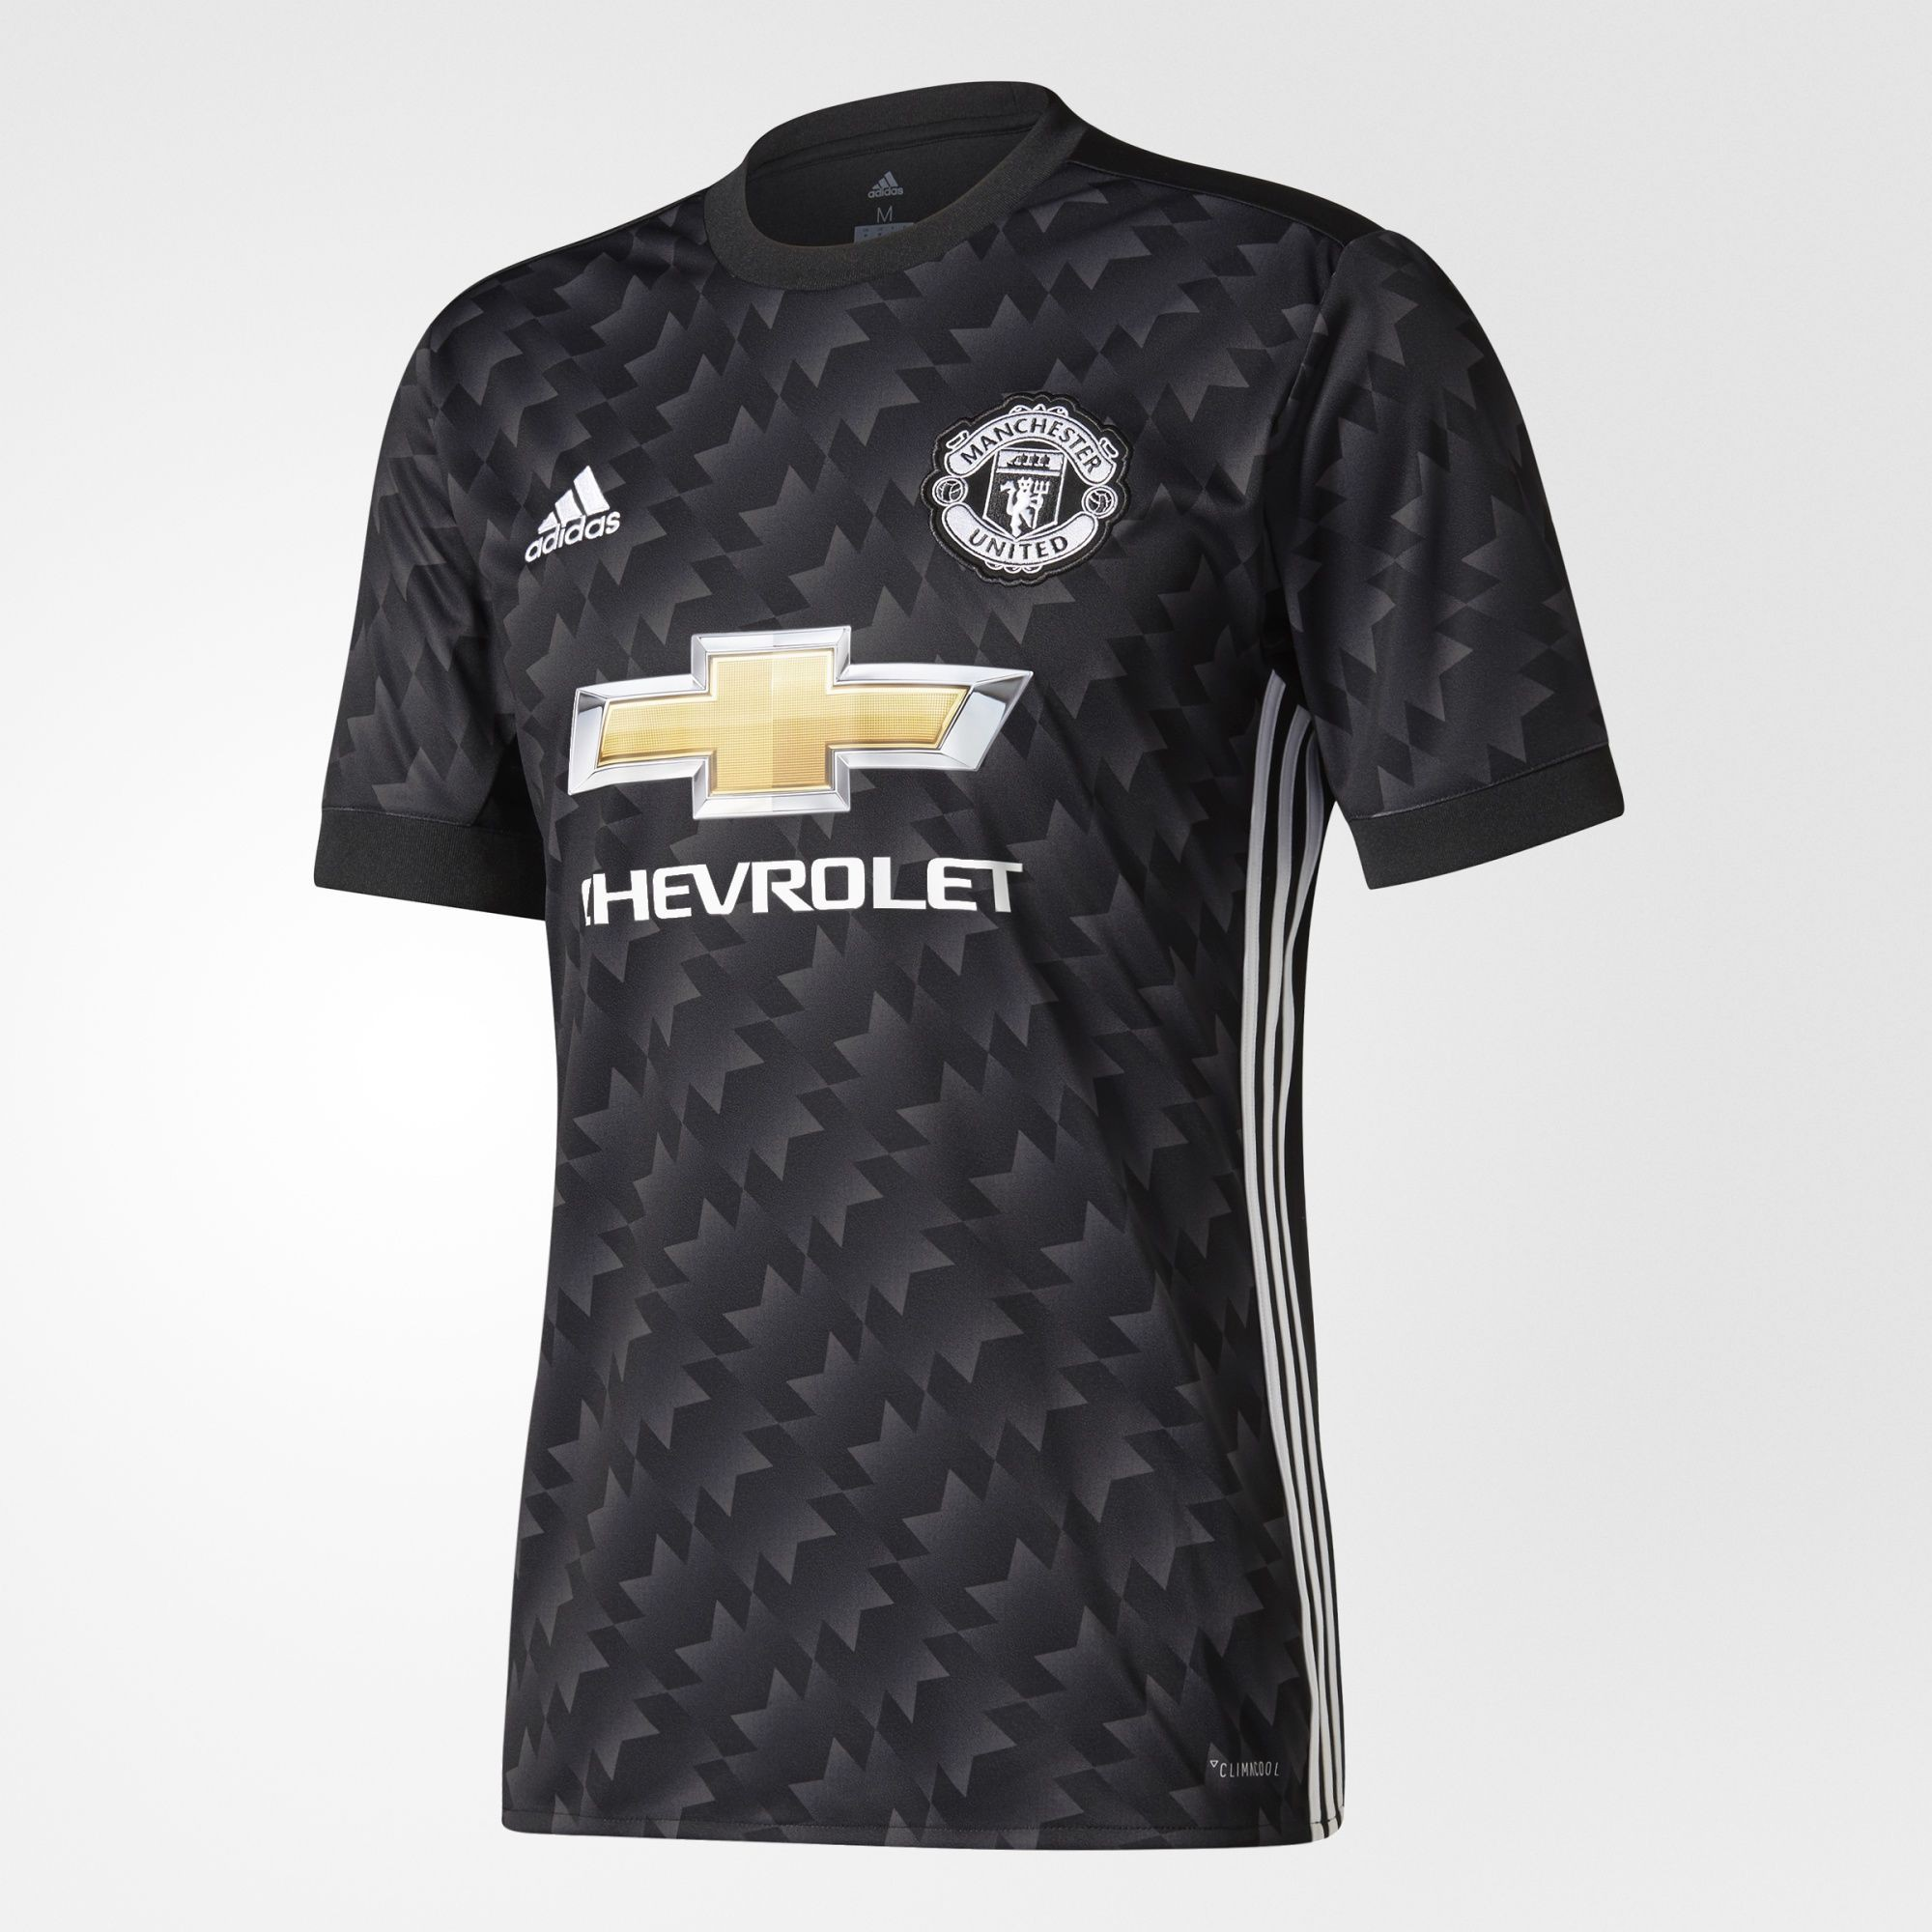 Man Utd home jersey 2017/18 replica mens